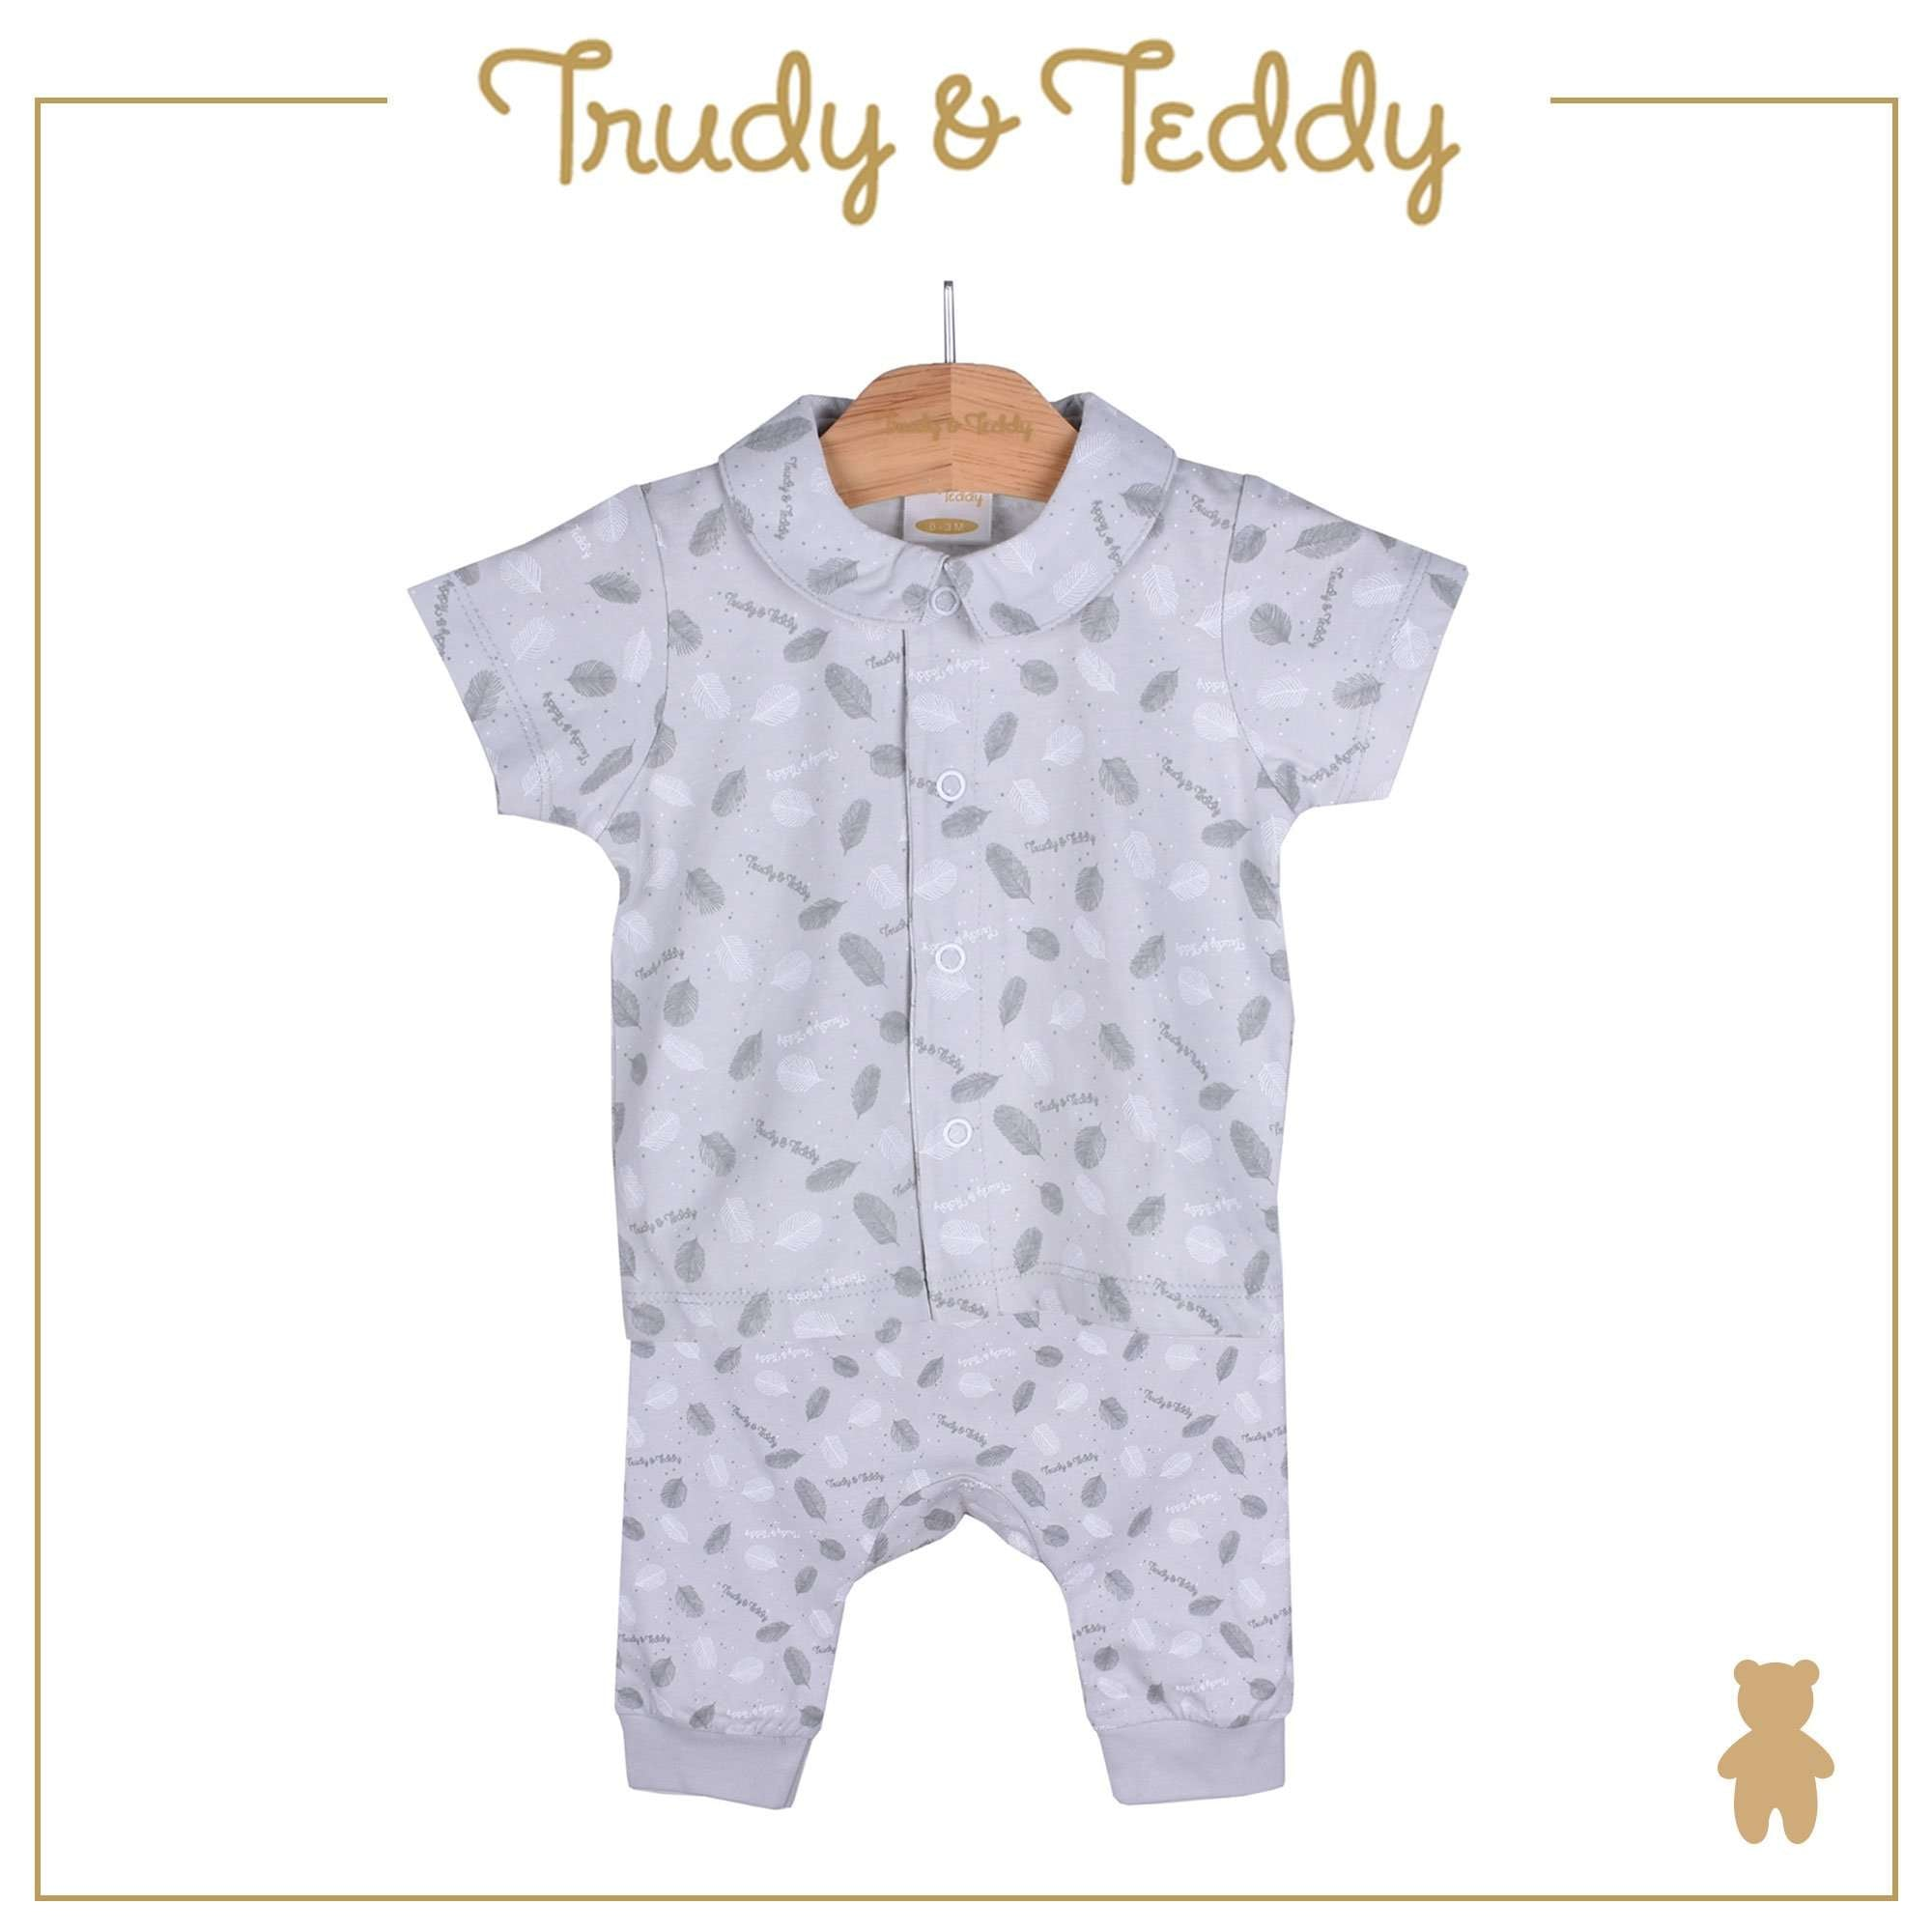 Trudy & Teddy Baby Boy Short Sleeve Long Pants Suit 820029-421 : Buy Trudy & Teddy online at CMG.MY